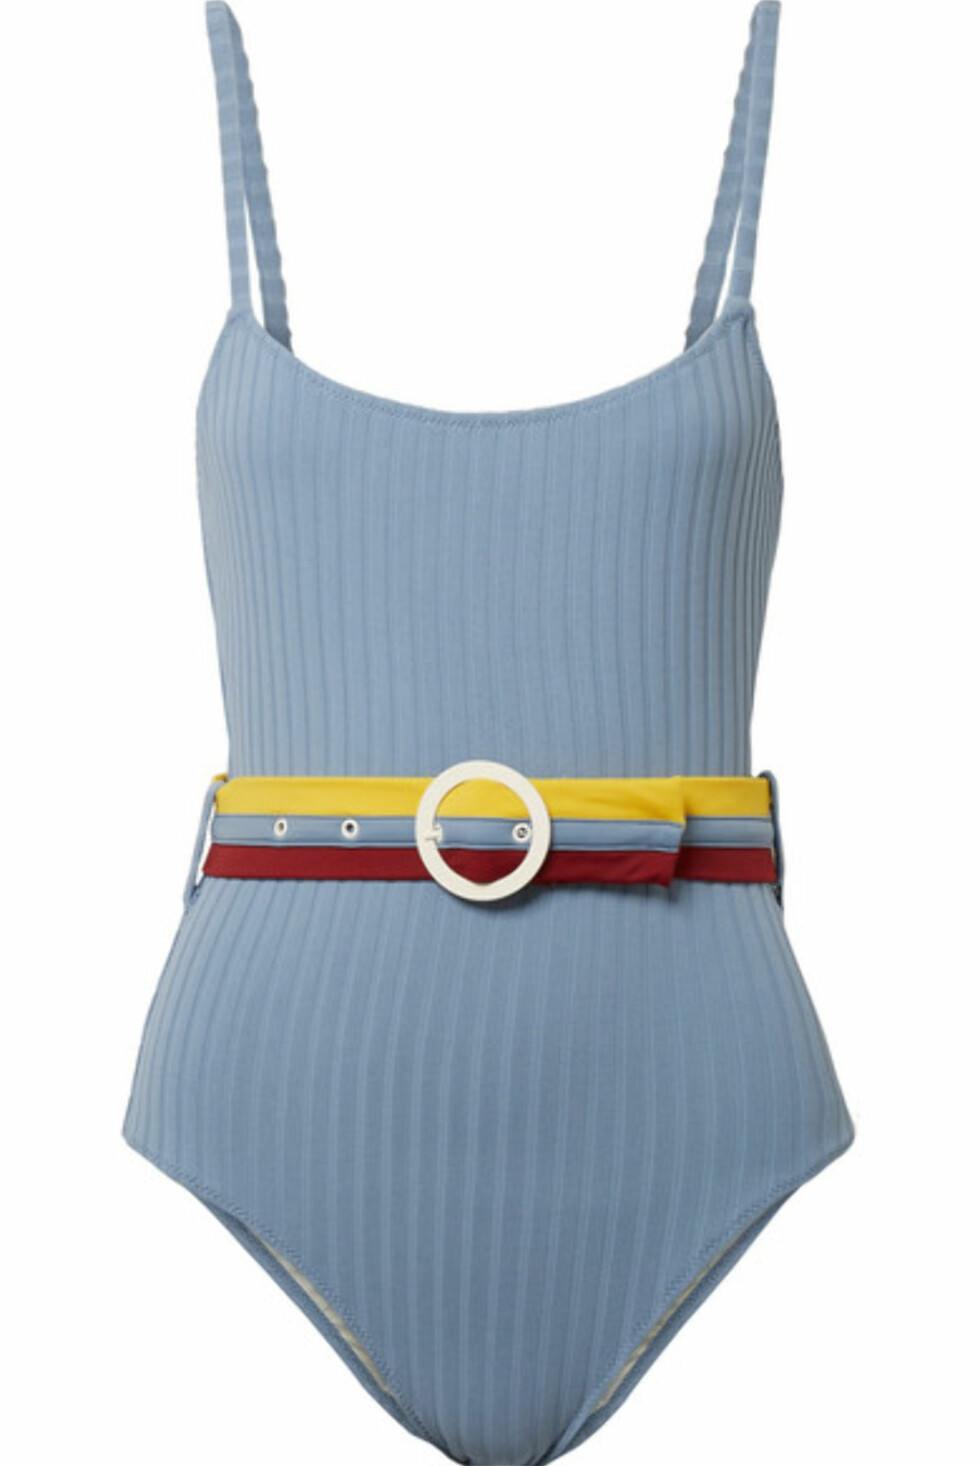 Badedrakt fra Solid & Striped |1785,-| https://www.net-a-porter.com/no/en/product/998297/solid___striped/the-nina-belted-ribbed-stretch-knit-swimsuit